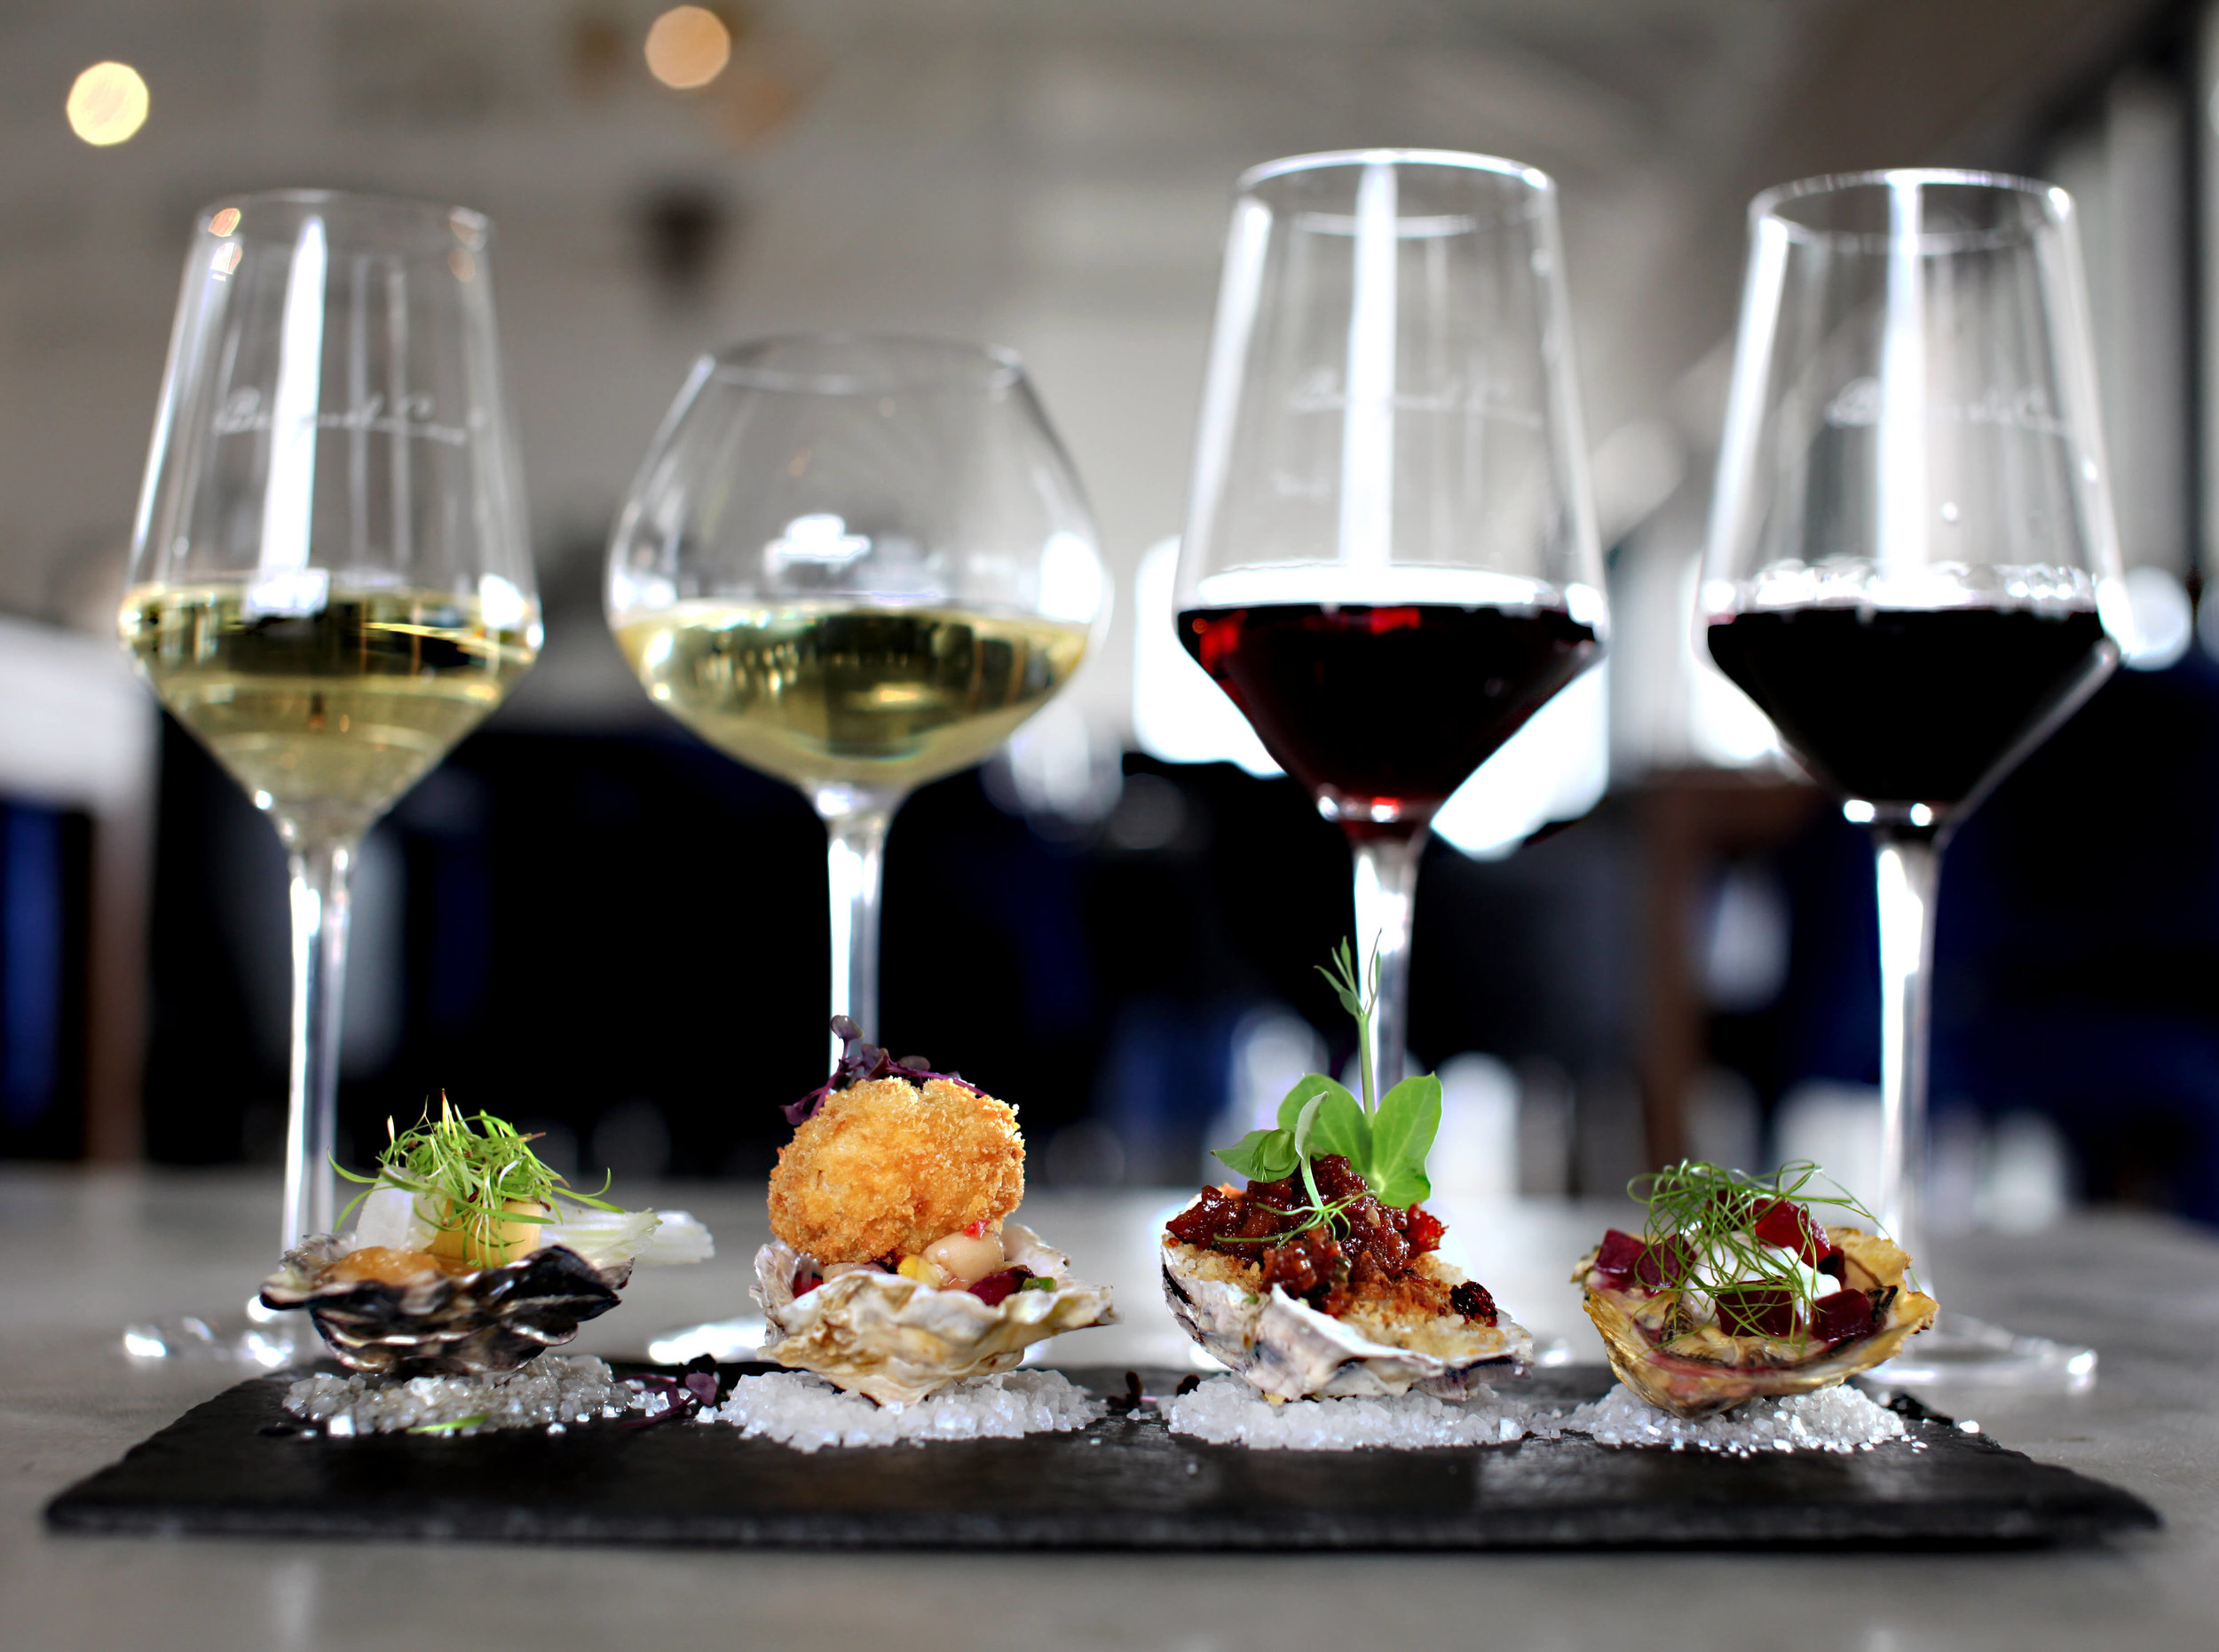 Oyster and wine.jpg